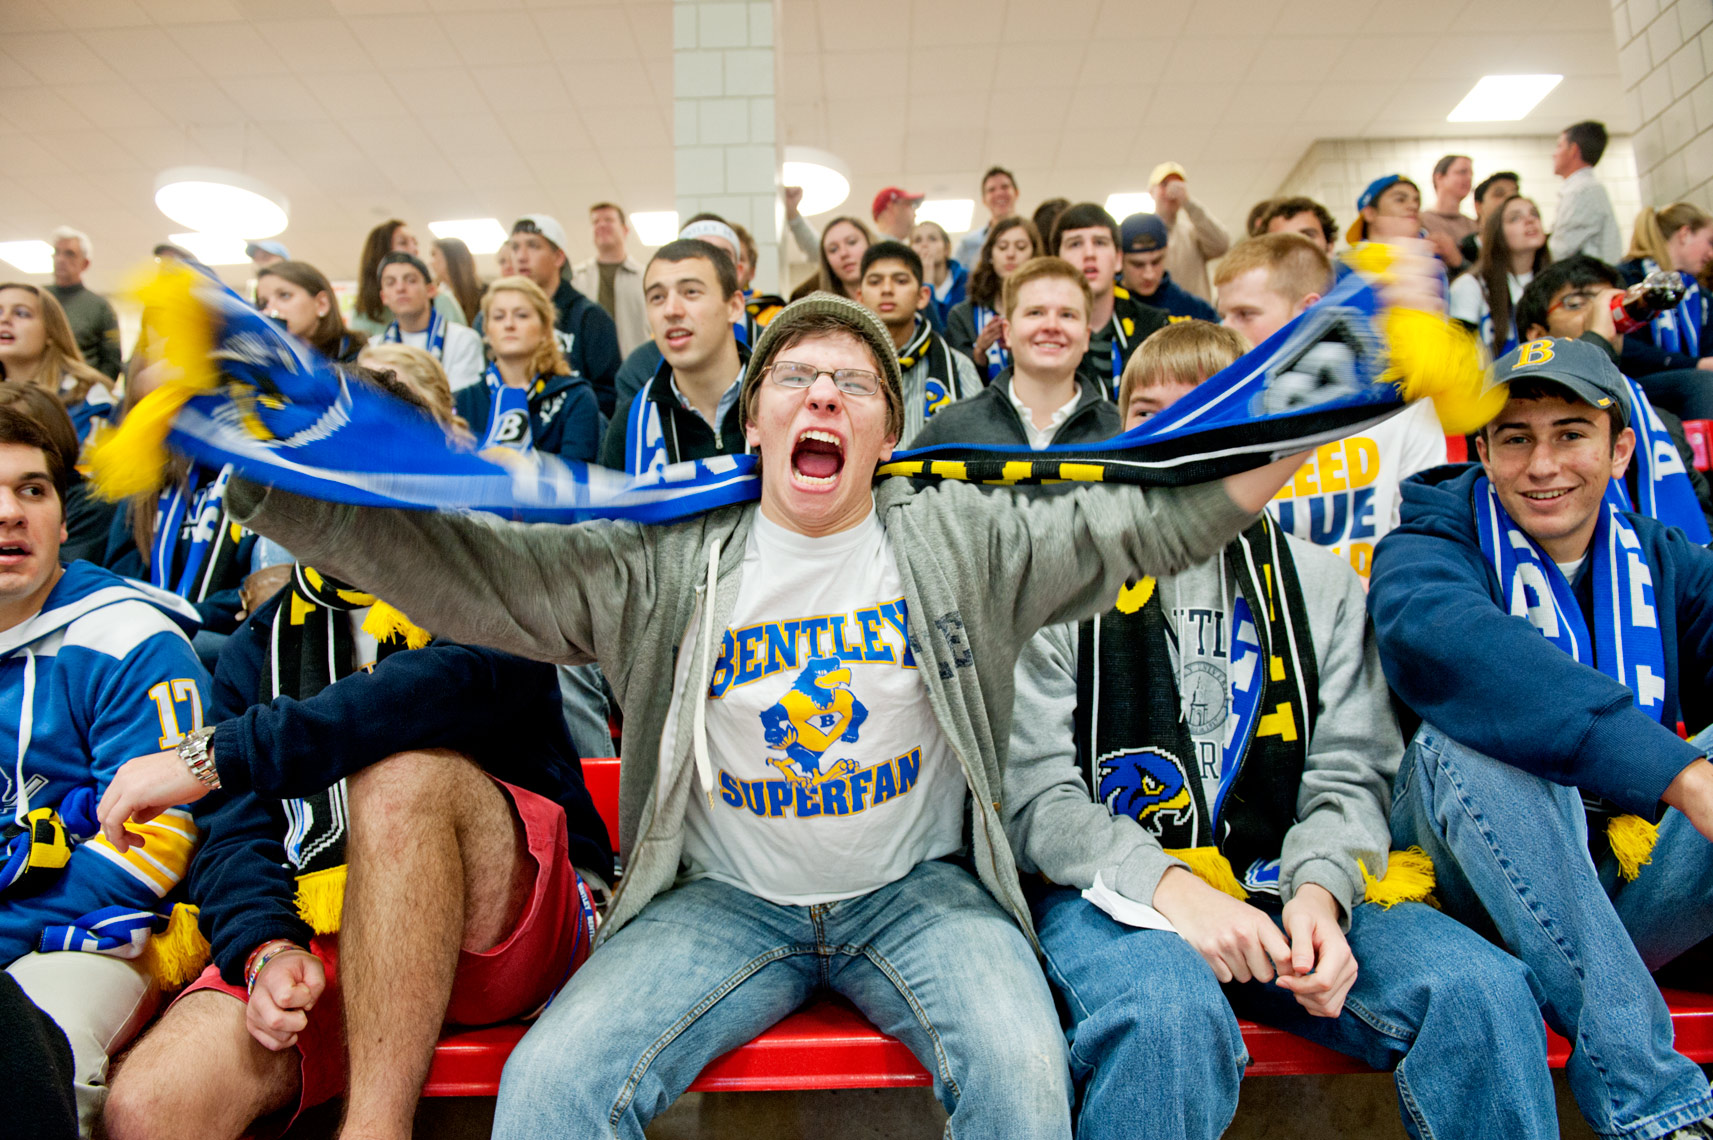 Bentley College, school spirit, Bentley Alumni Magazine, The Observer, Webb Chappell Photography